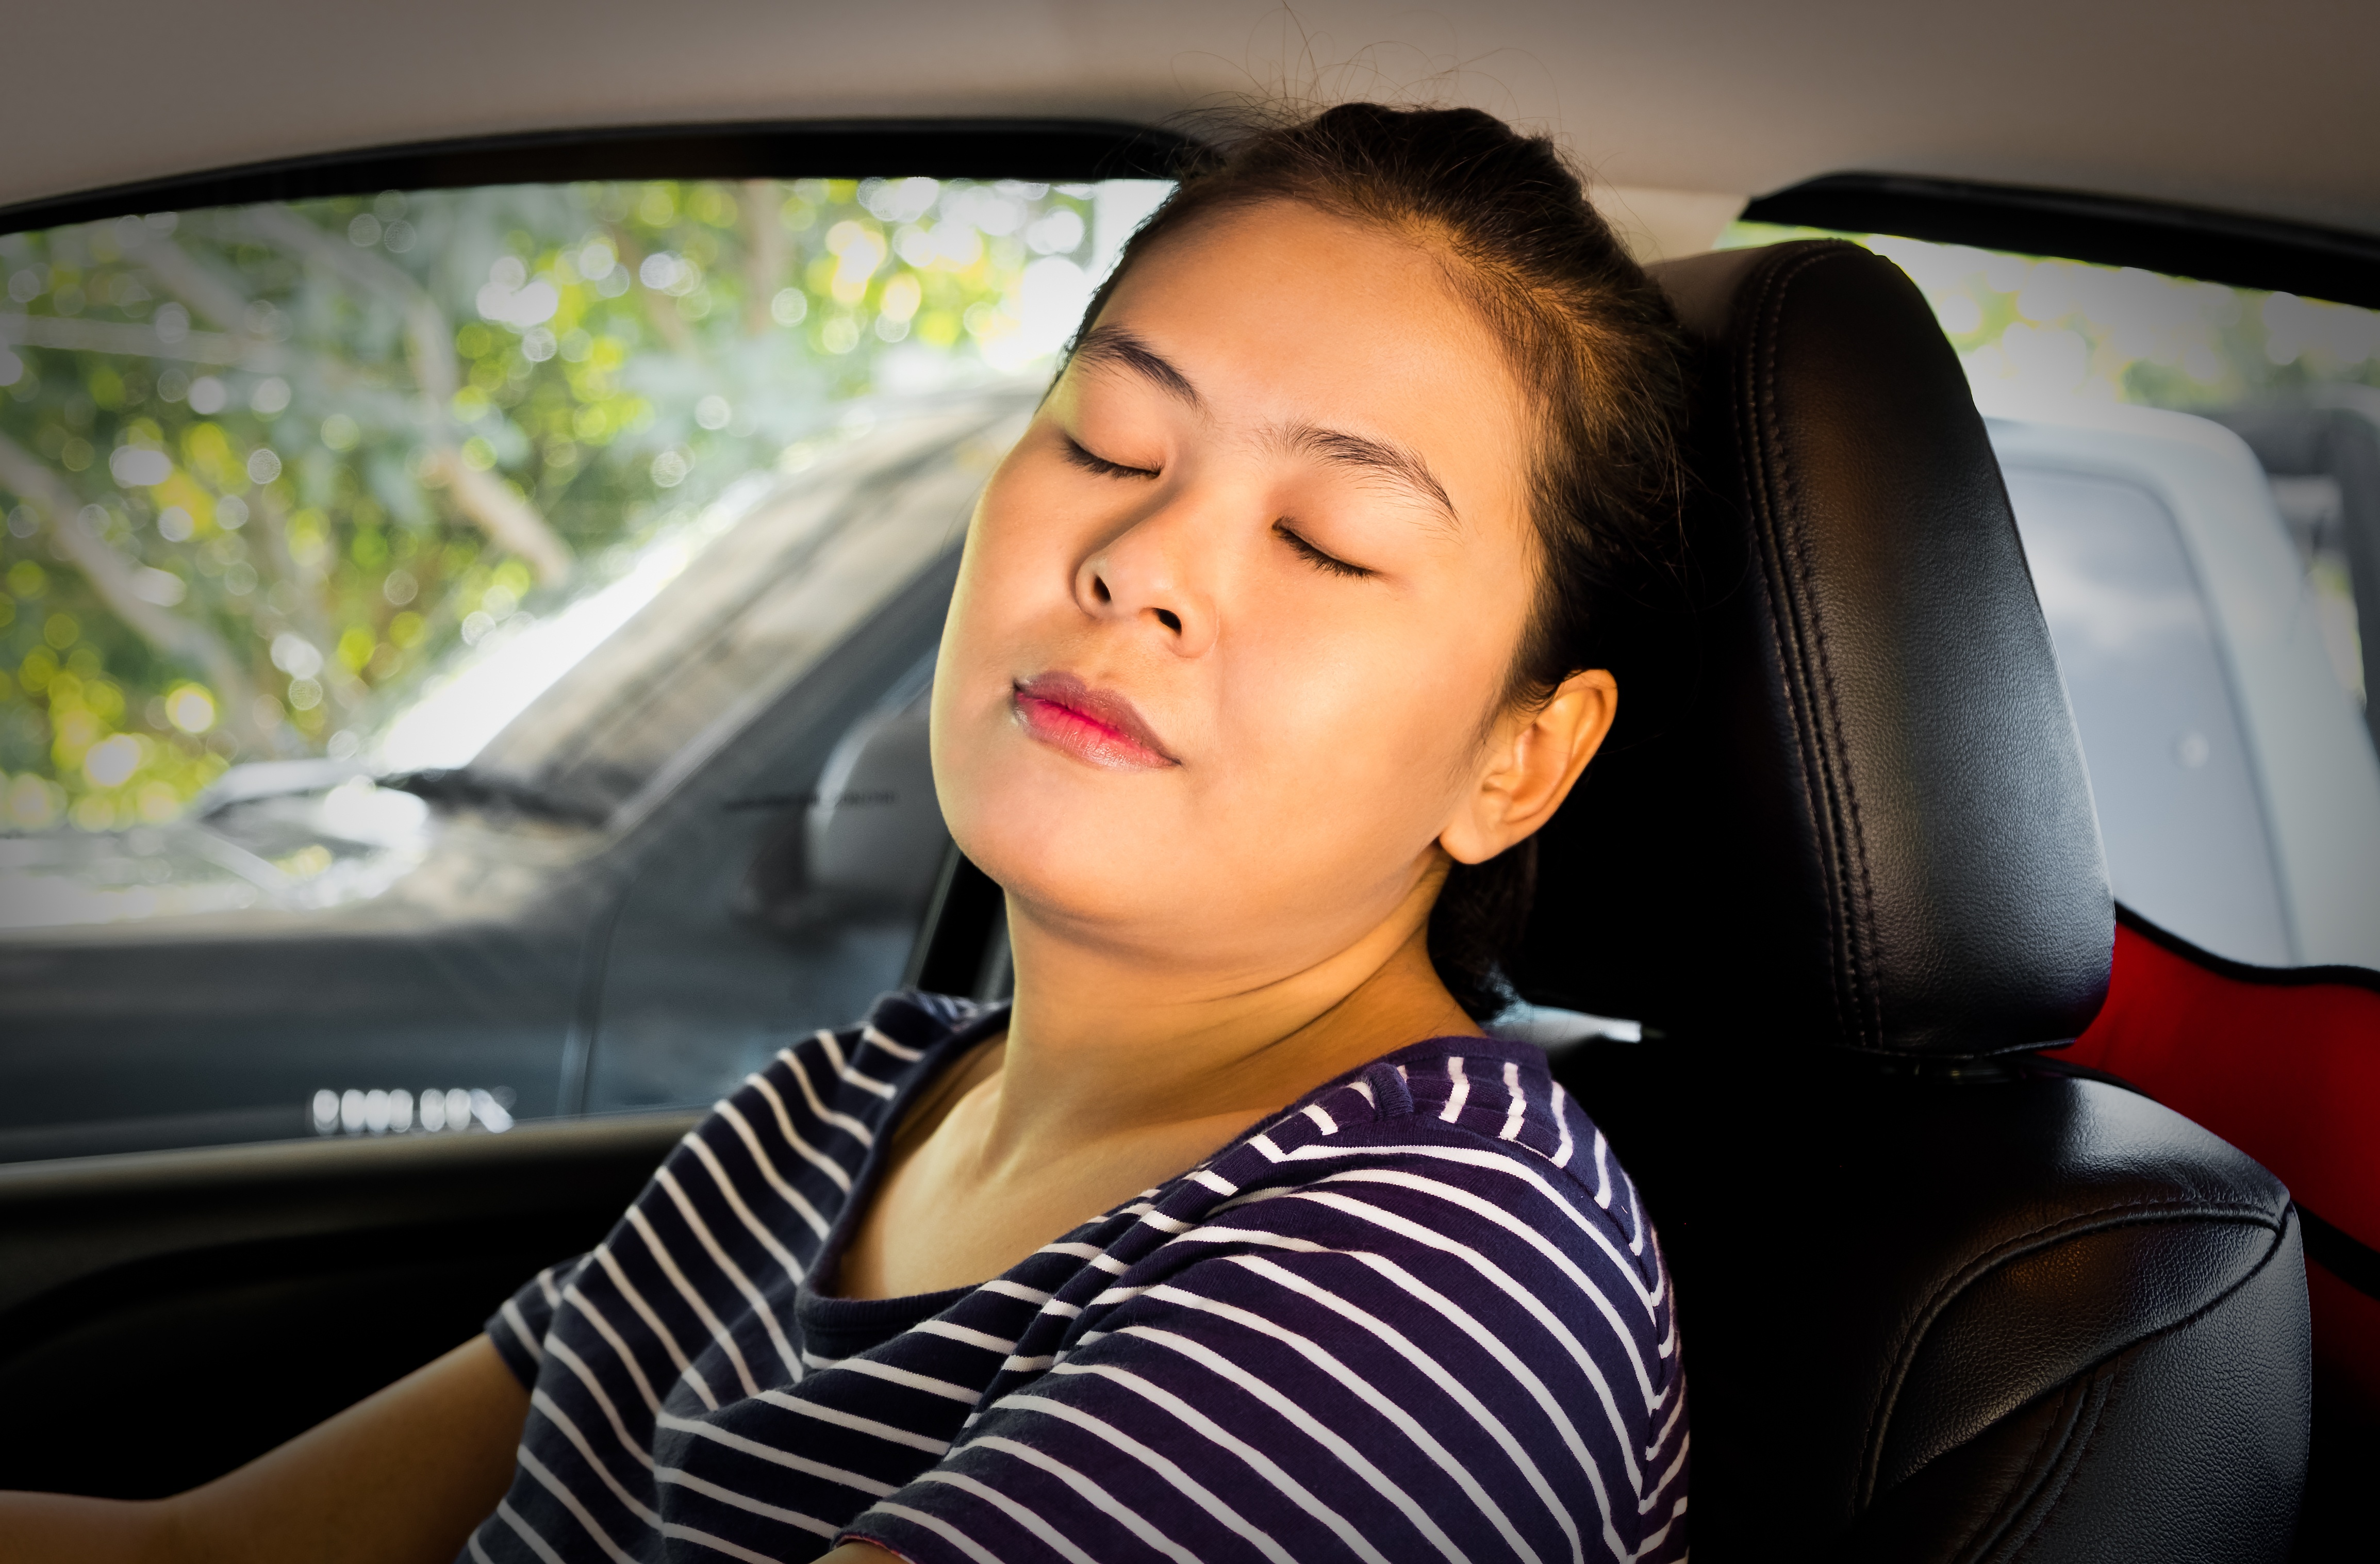 mother drowsy driving and_asleep_at_the_wheel